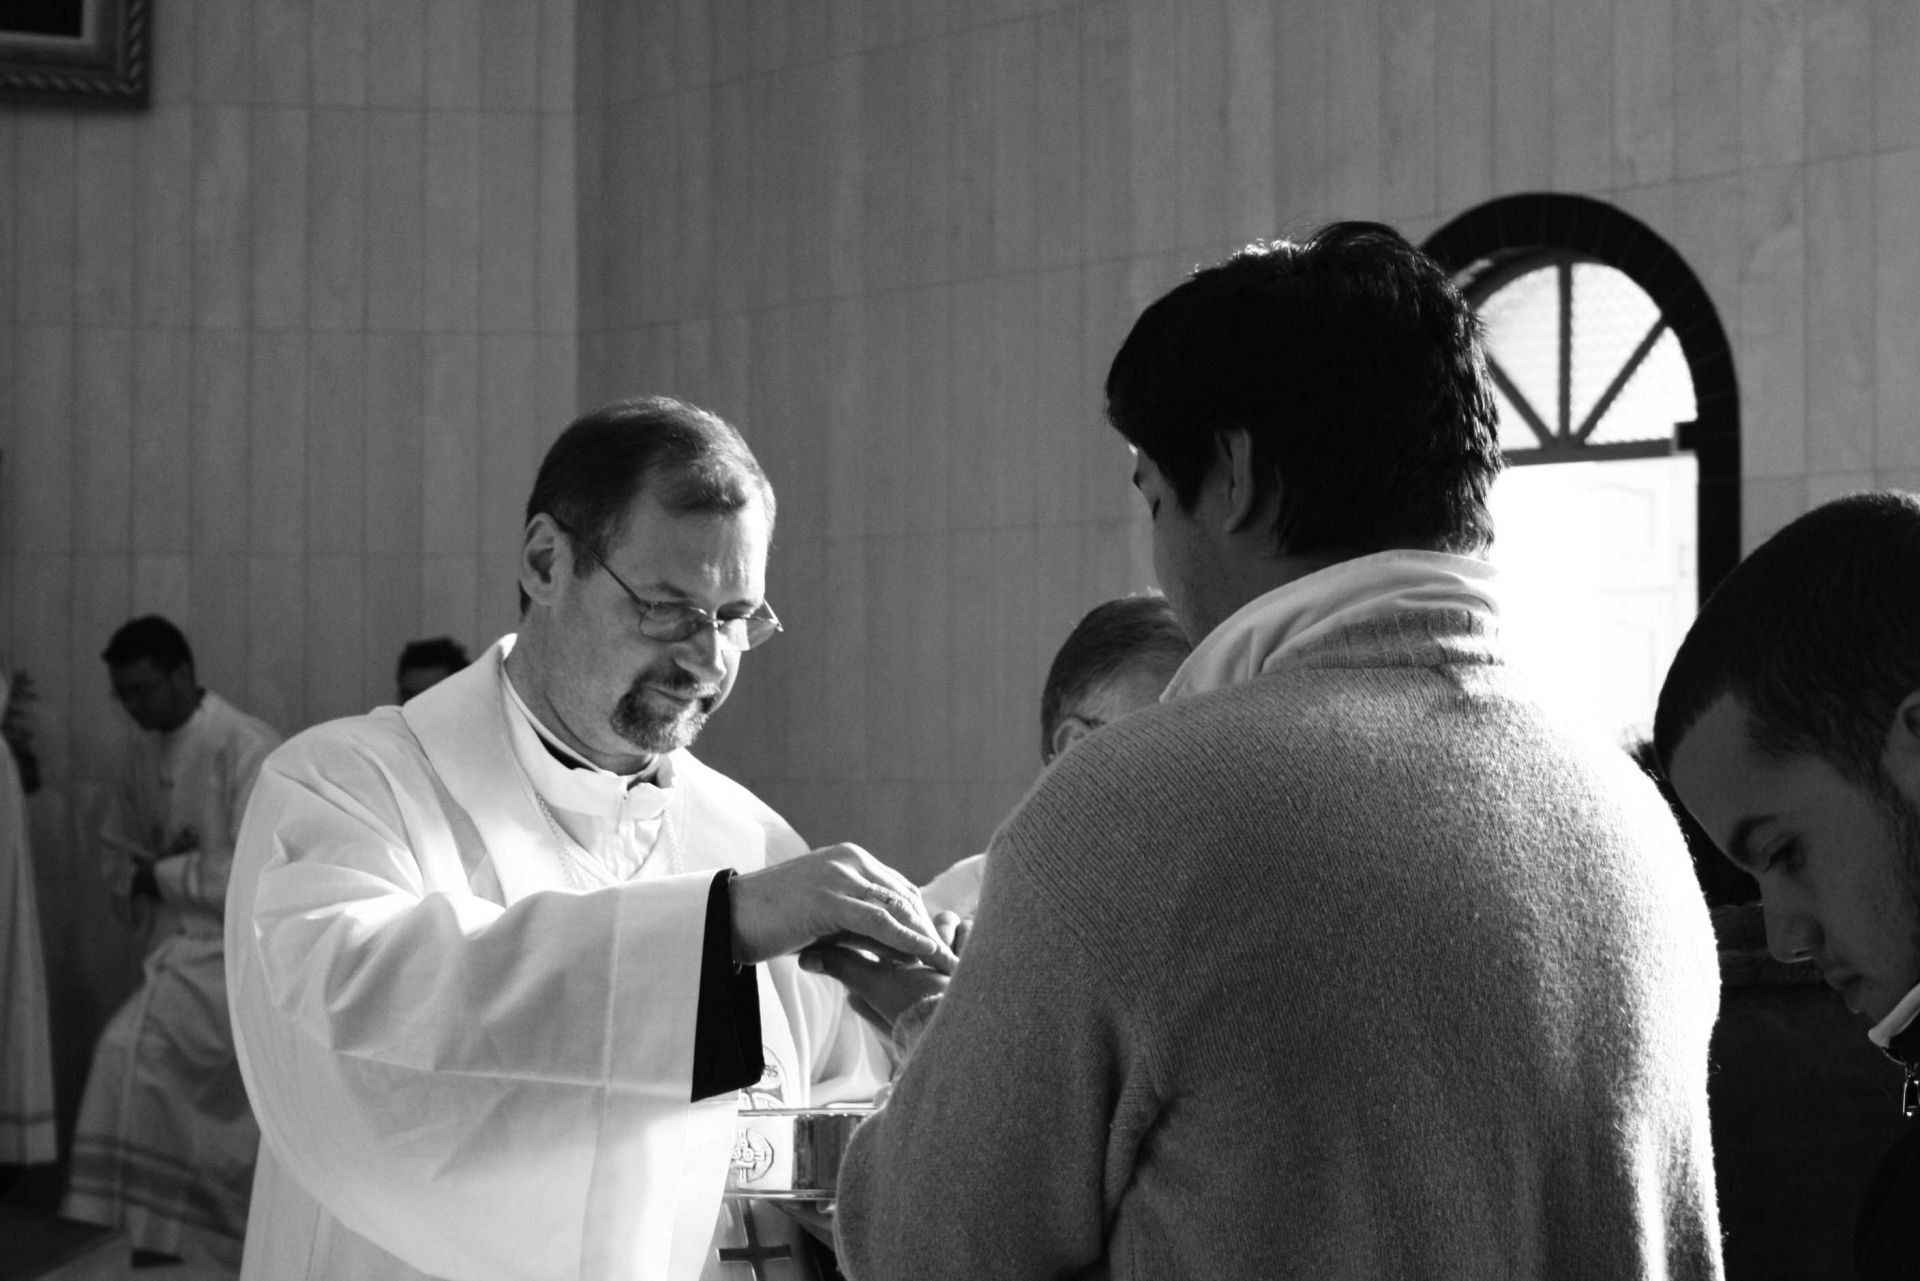 eucharist, share, sacramento, body of christ, keep you in mind